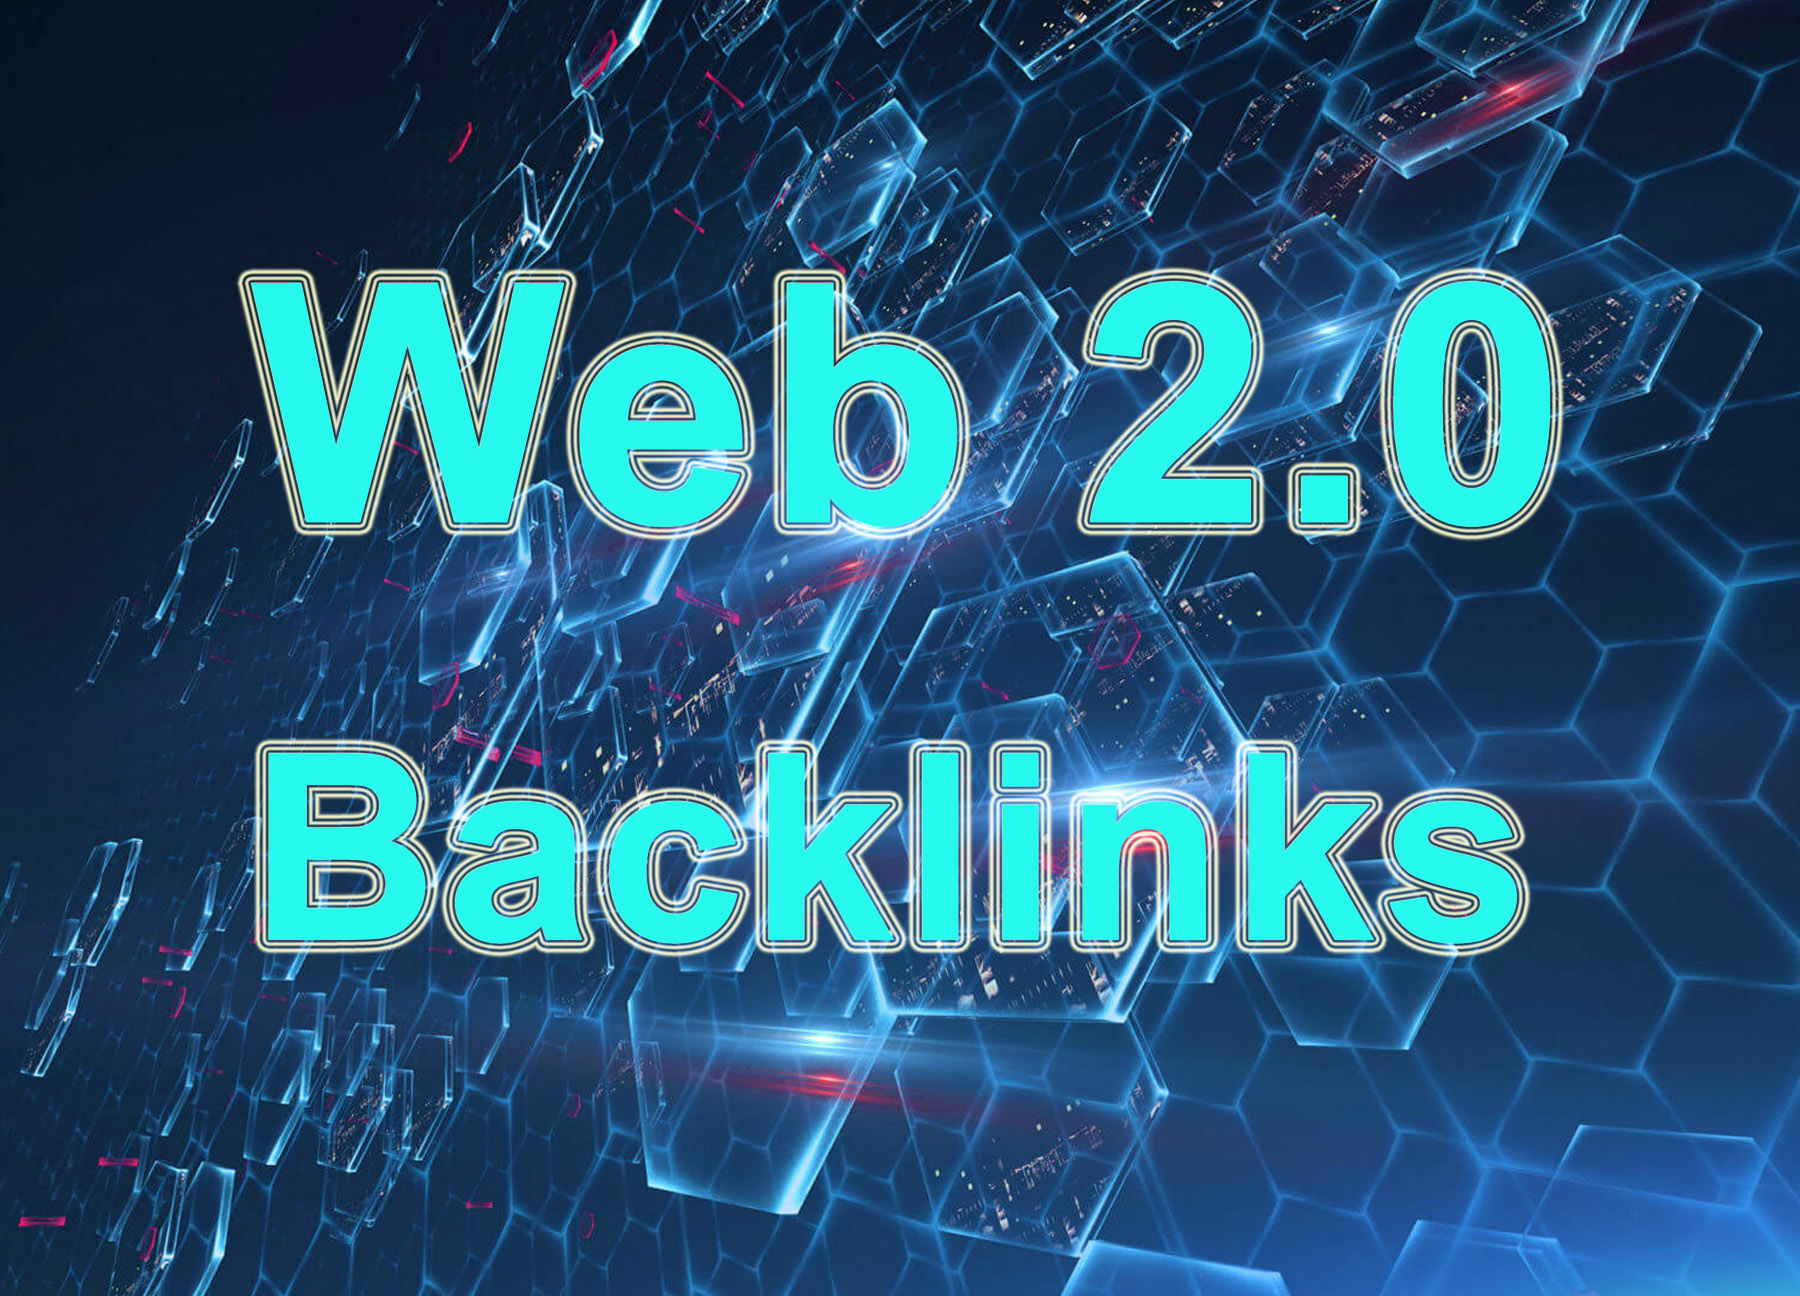 100 web 2.0 backlinks for SEO promotion